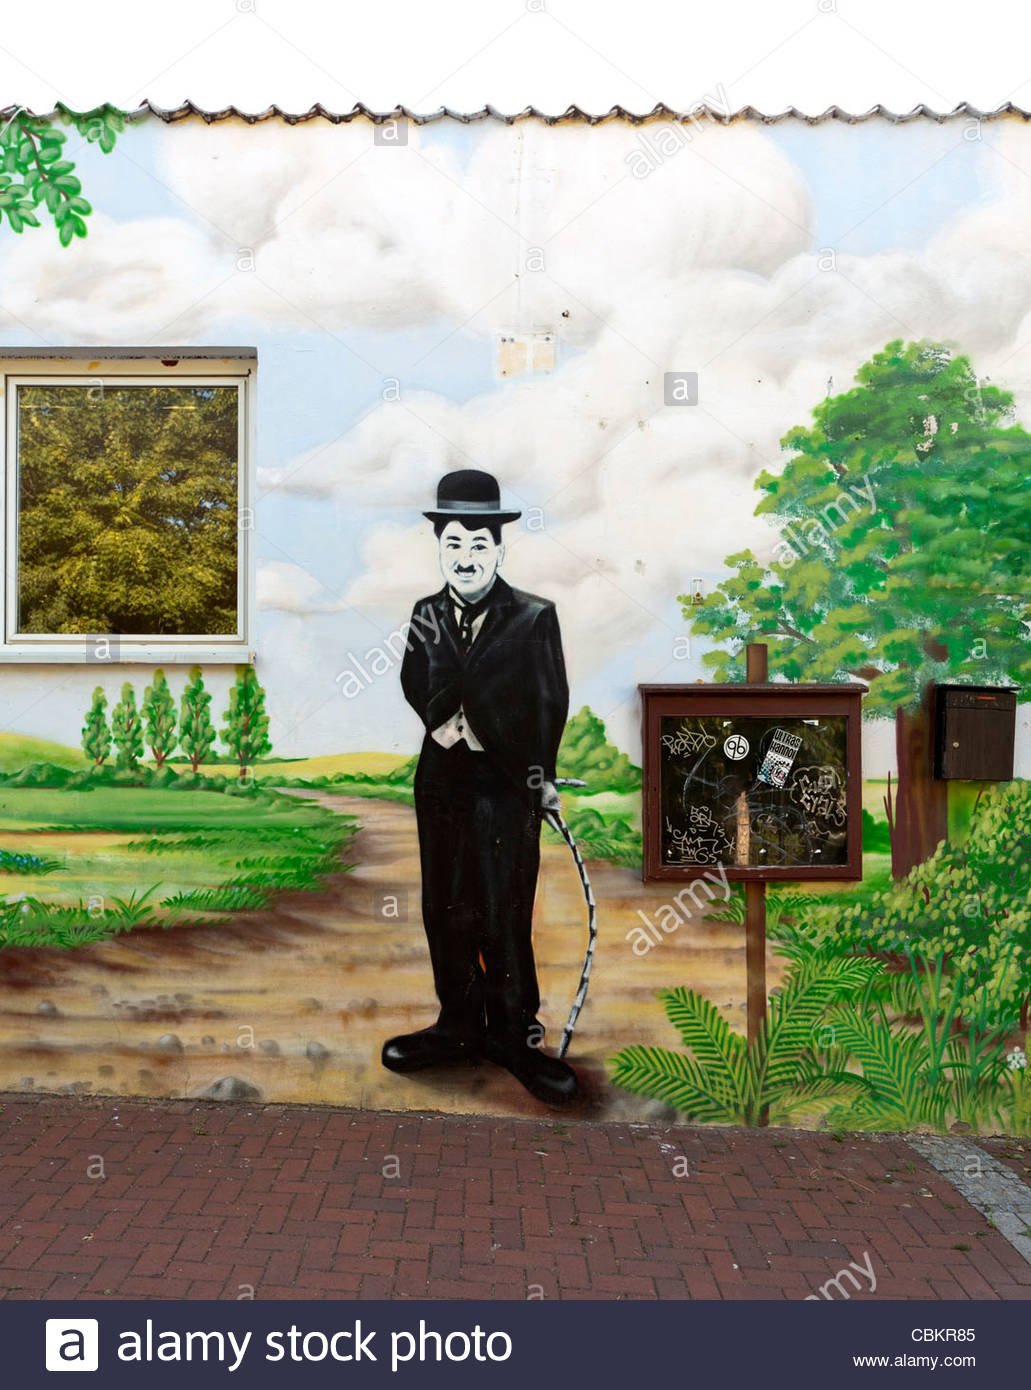 Mural on the side of a building of Charlie Chaplin as the Tramp, Hildesheim, Lower Saxony, Germany - Stock Image